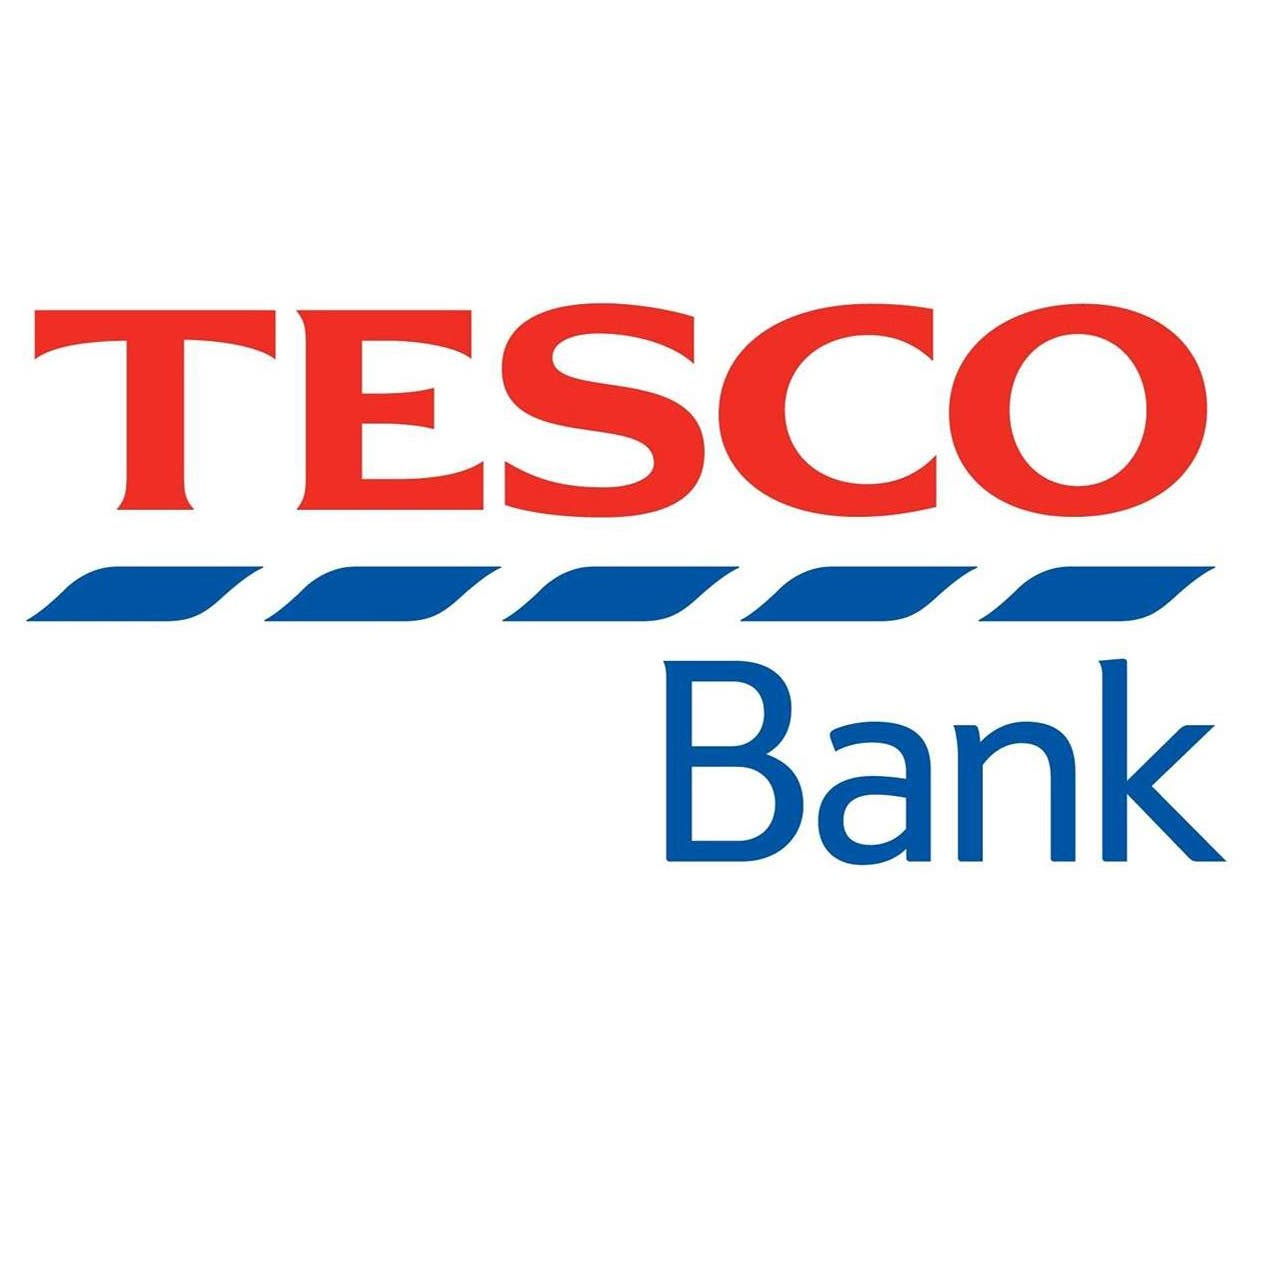 Tesco bank news cards accounts mortgages bankrate uk tesco was founded by grocer jack cohen a simple market stallholder who began selling tesco tea in 1924 using the initials tes from the tea supplier reheart